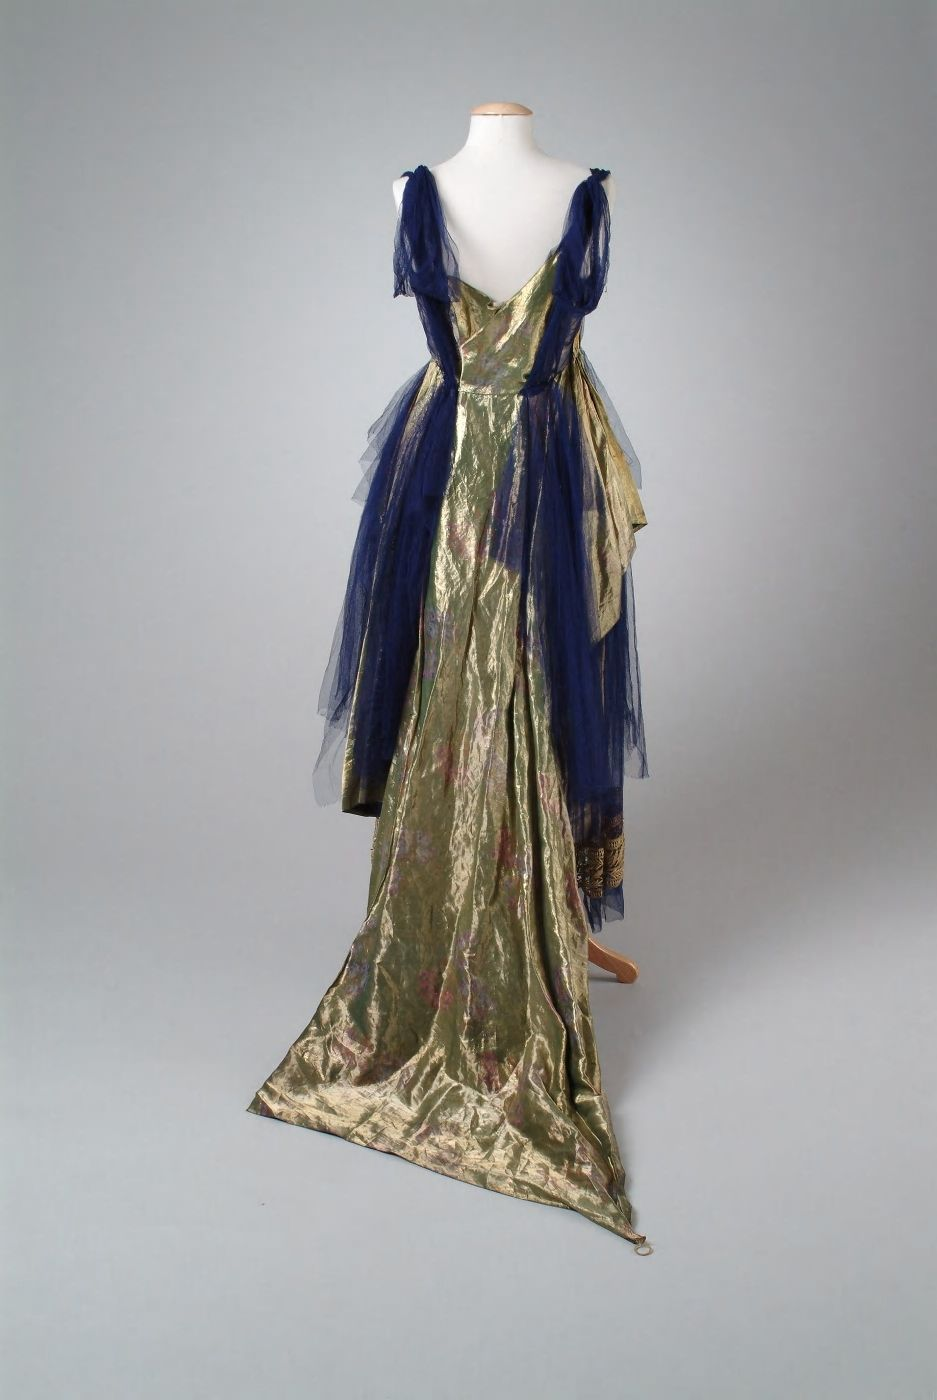 Dress:1921 Description: Evening gown of green gold metallic tissues woven with pink flowers. The under-skirt and trim are of violet silk illusion, creating an eighteenth century effect of panniers. The under-skirt is trimmed with gold bullion braid. A shorter over-skirt dips to a full train in the back. Back